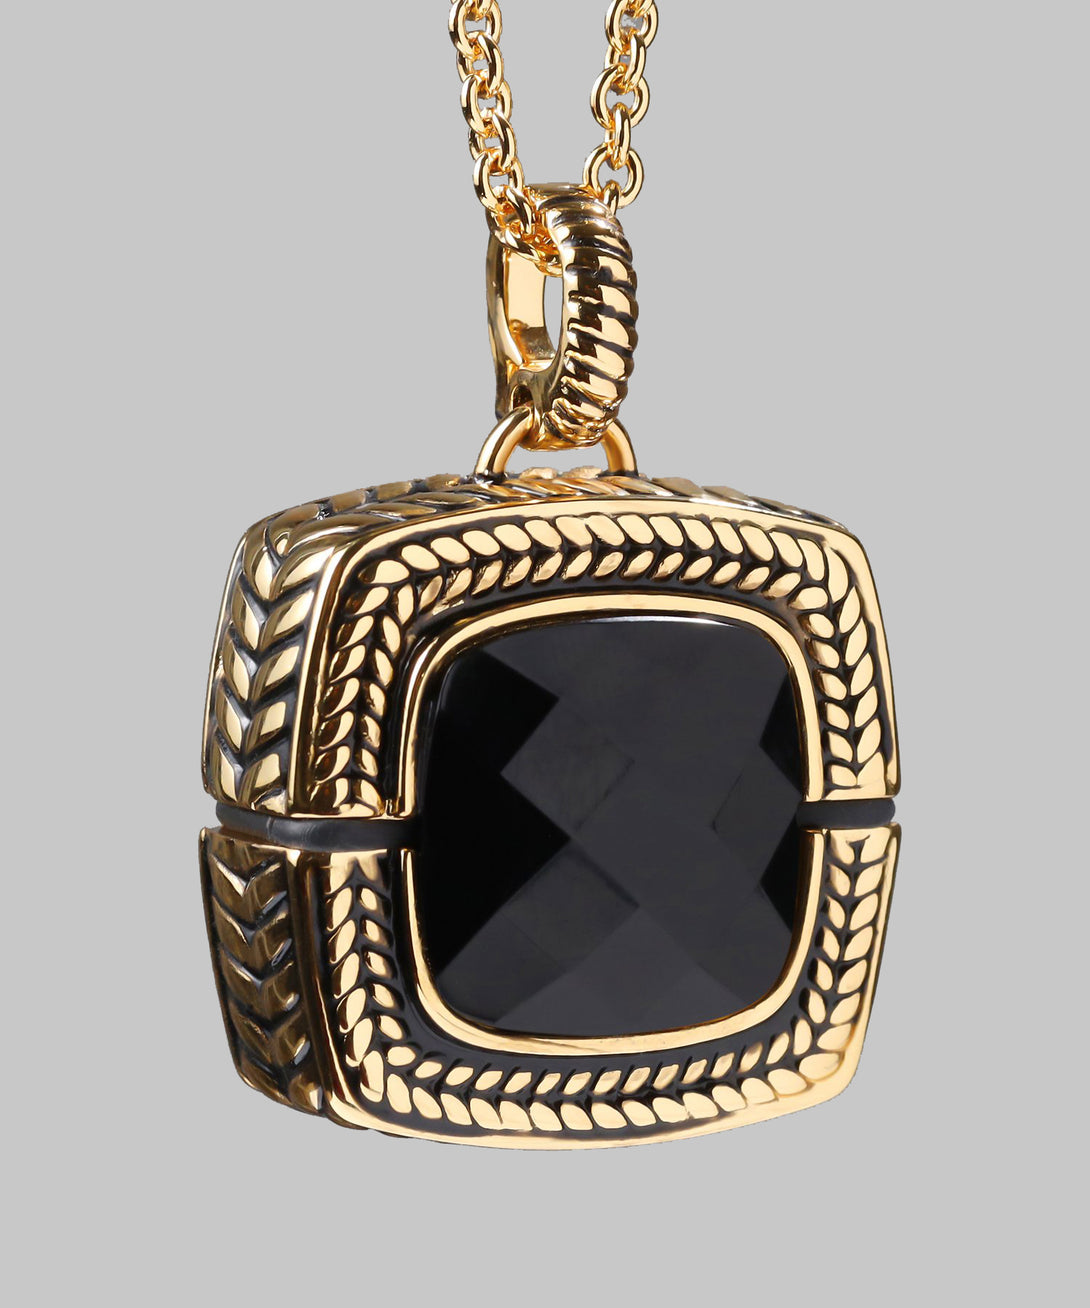 Sally Emergency Bluetooth Opaque Black And Gold Necklace And Removable Pendant (front)